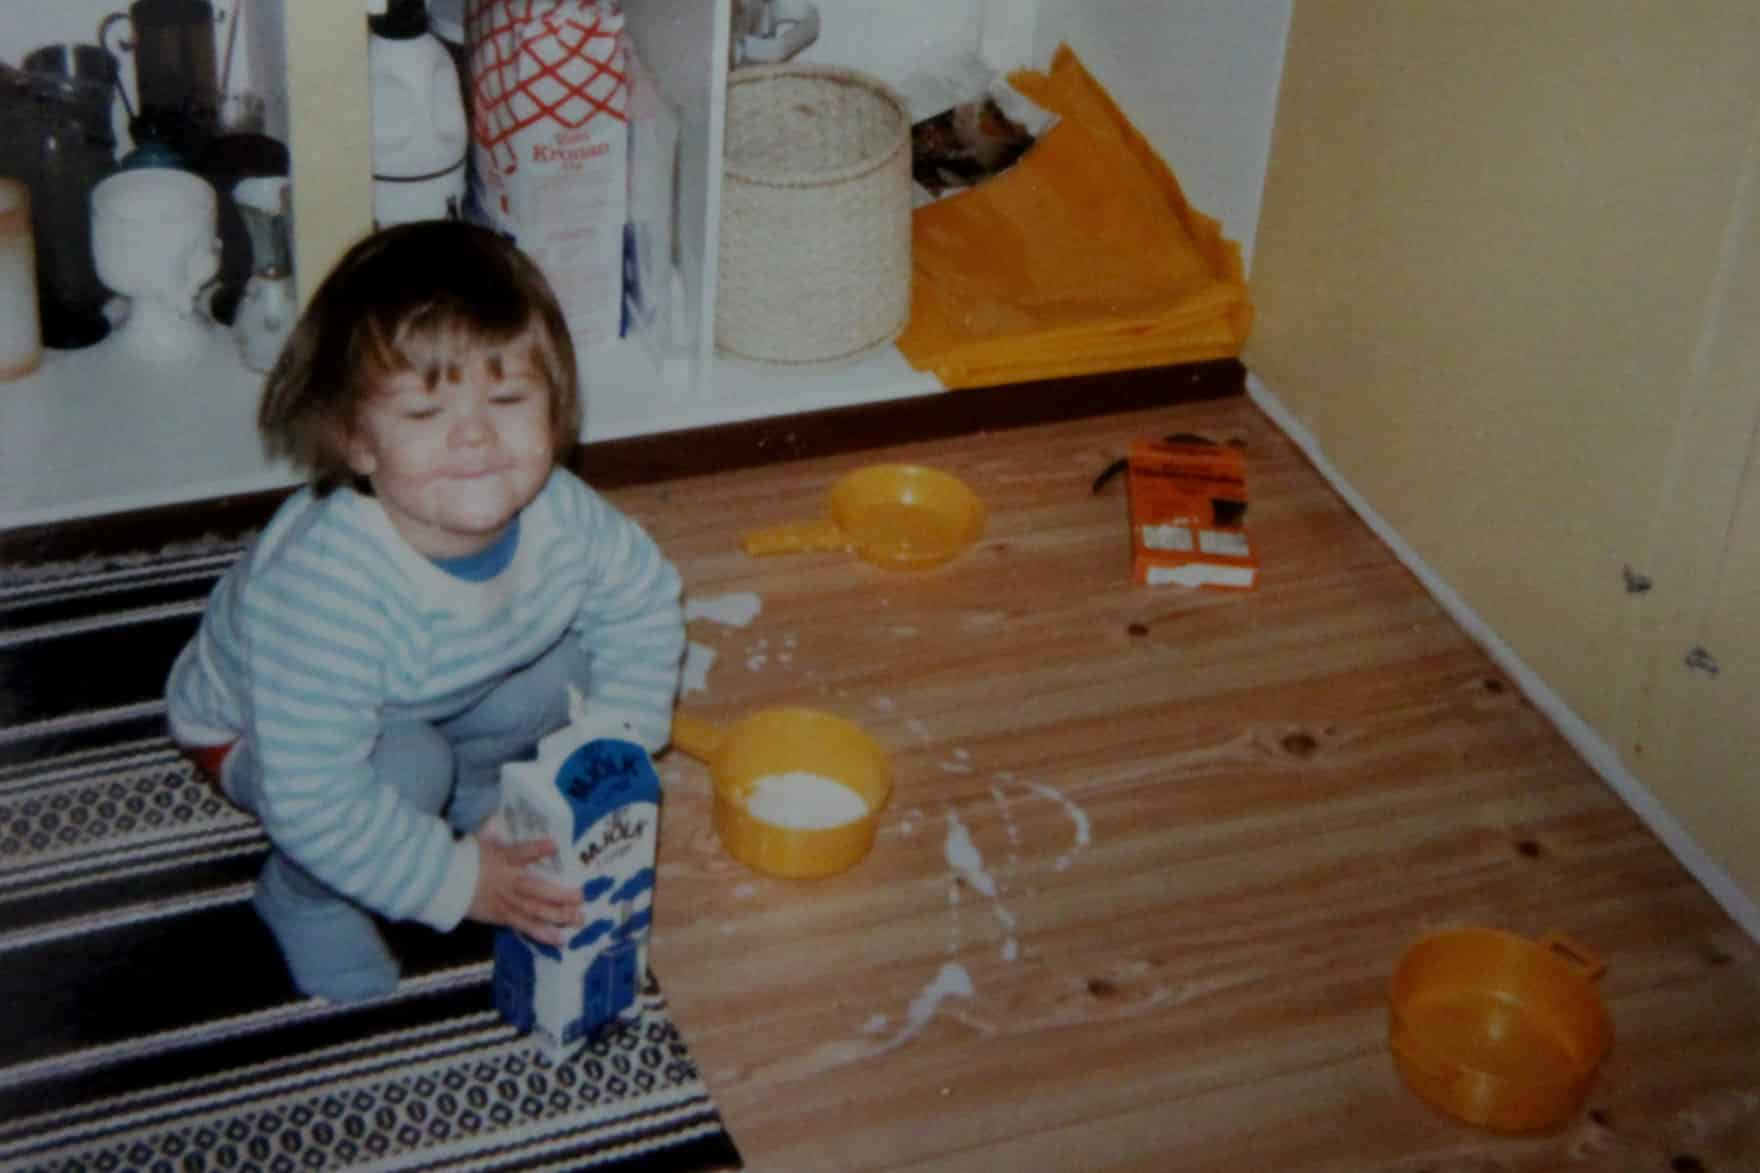 Carlos Eriksson as a toddler, making a mess in his mom's kitchen2.